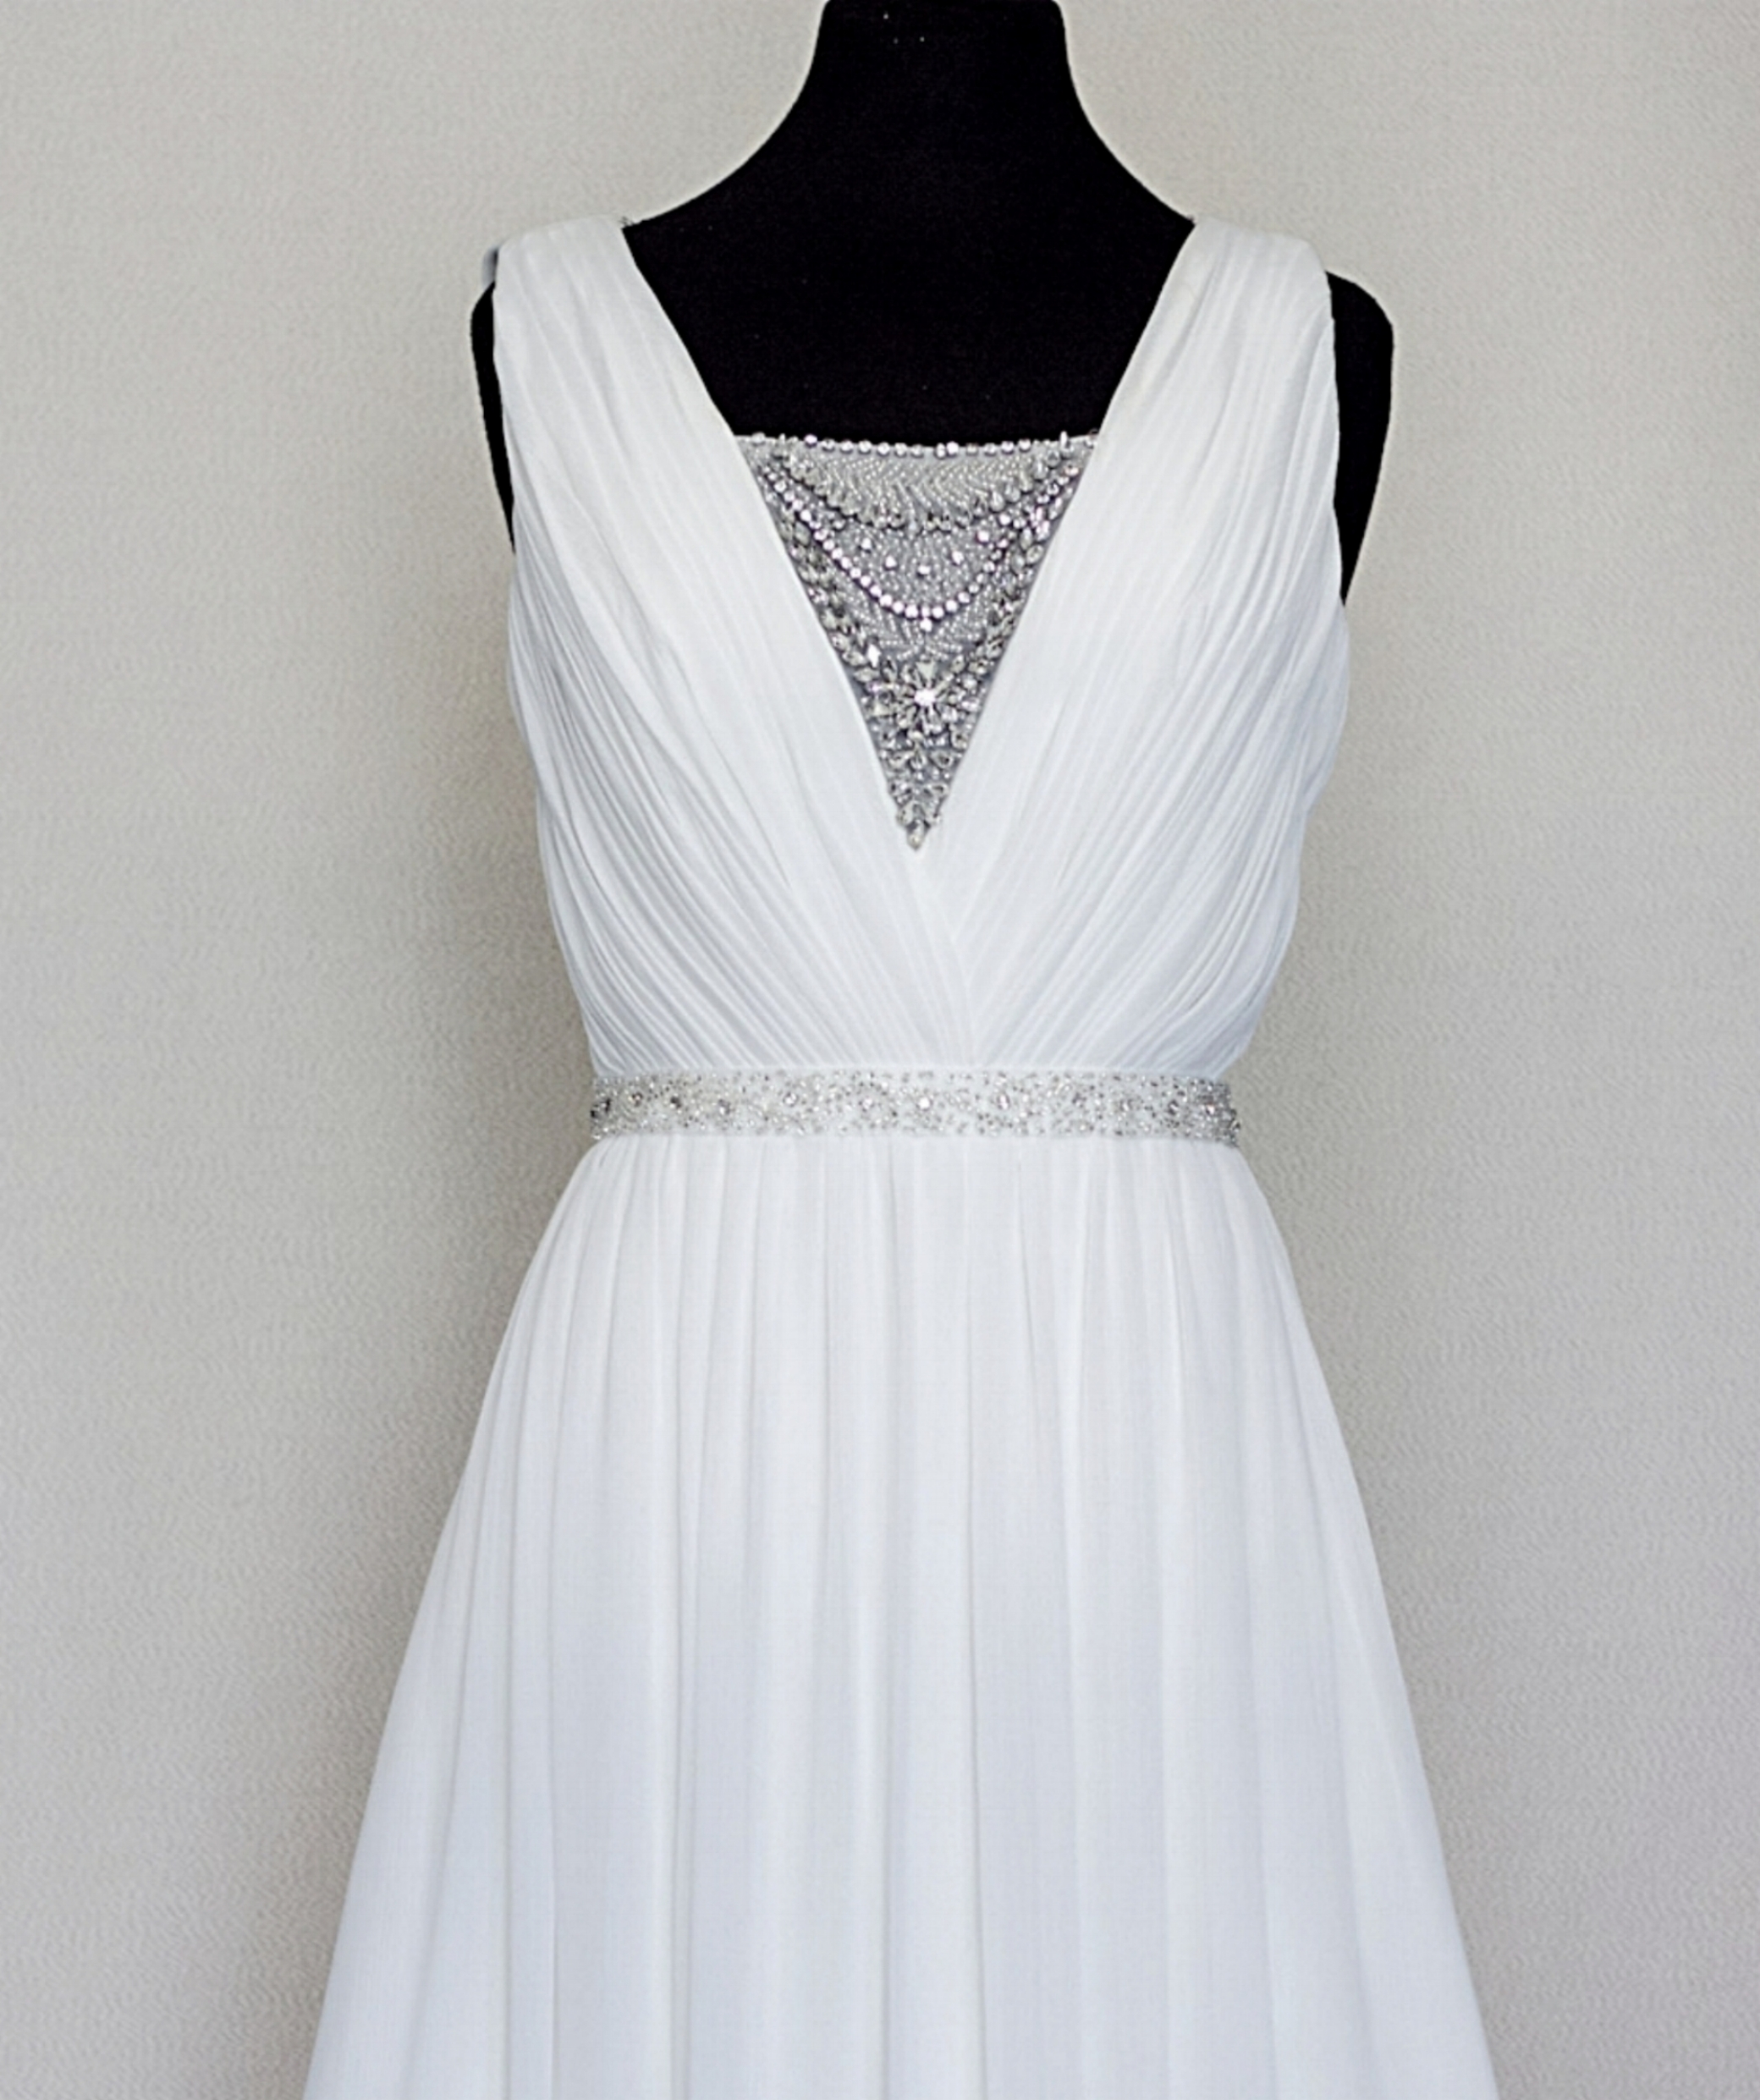 This dress gives us all the Gatsby vintage feels!